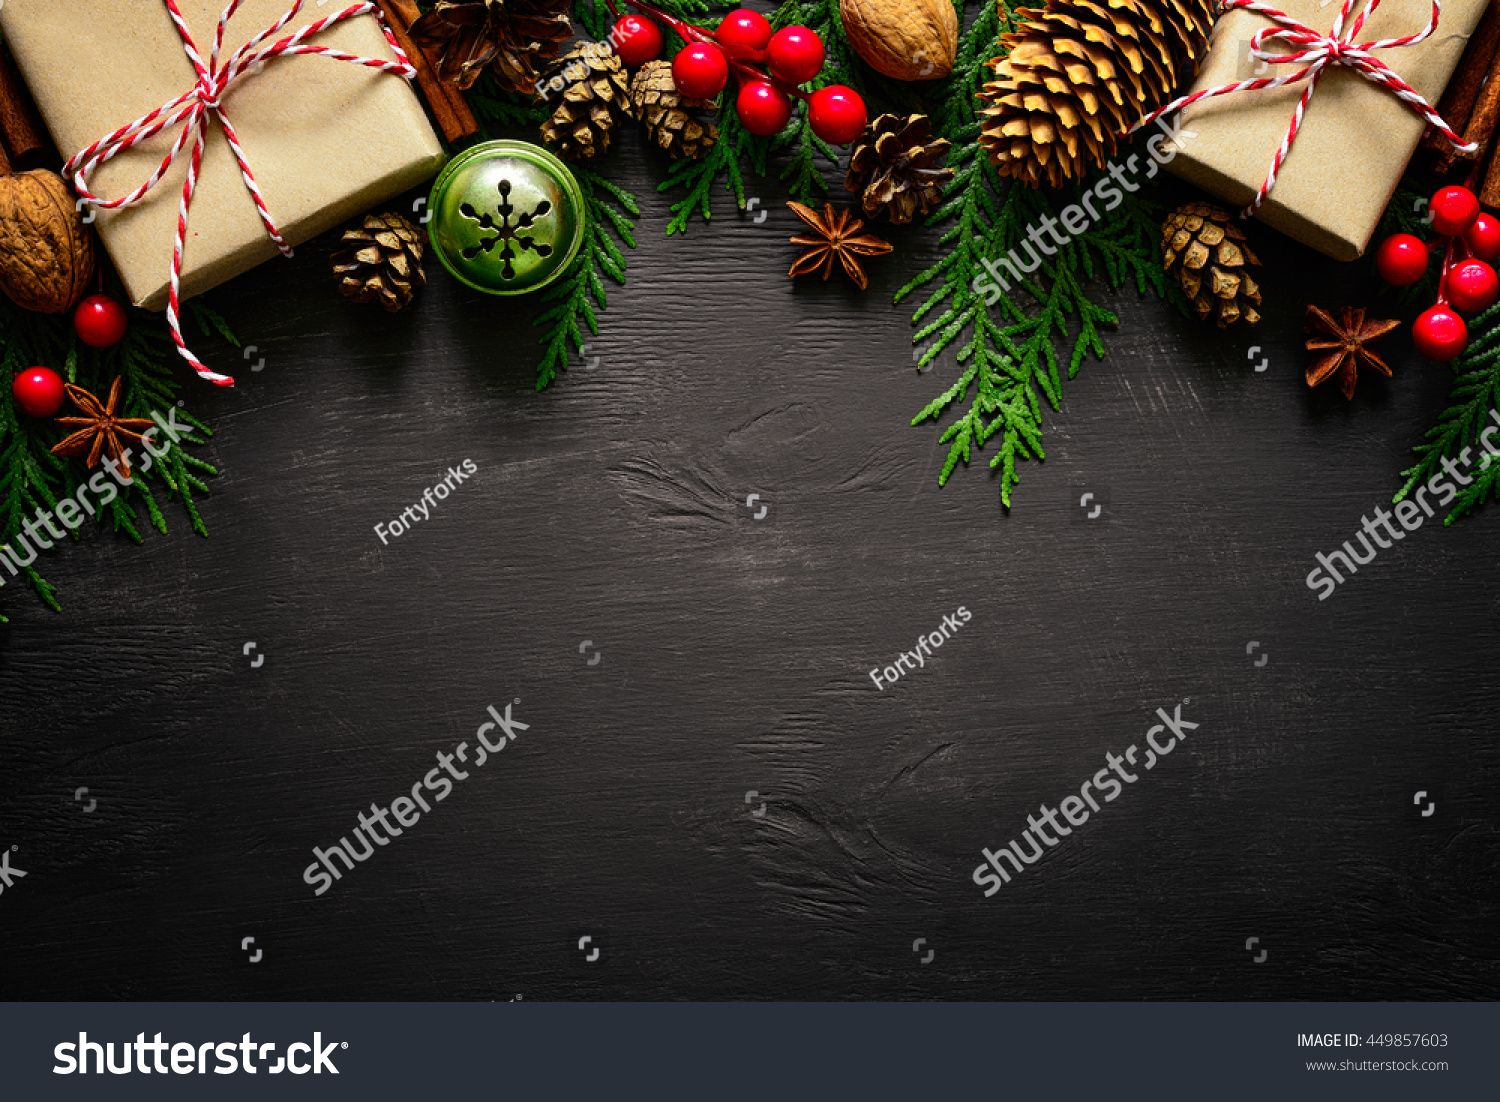 Christmas or New Year dark wooden background, Xmas black board framed with season decorations, space for a text, view from above #Sponsored , #ad, #background#Xmas#black#wooden